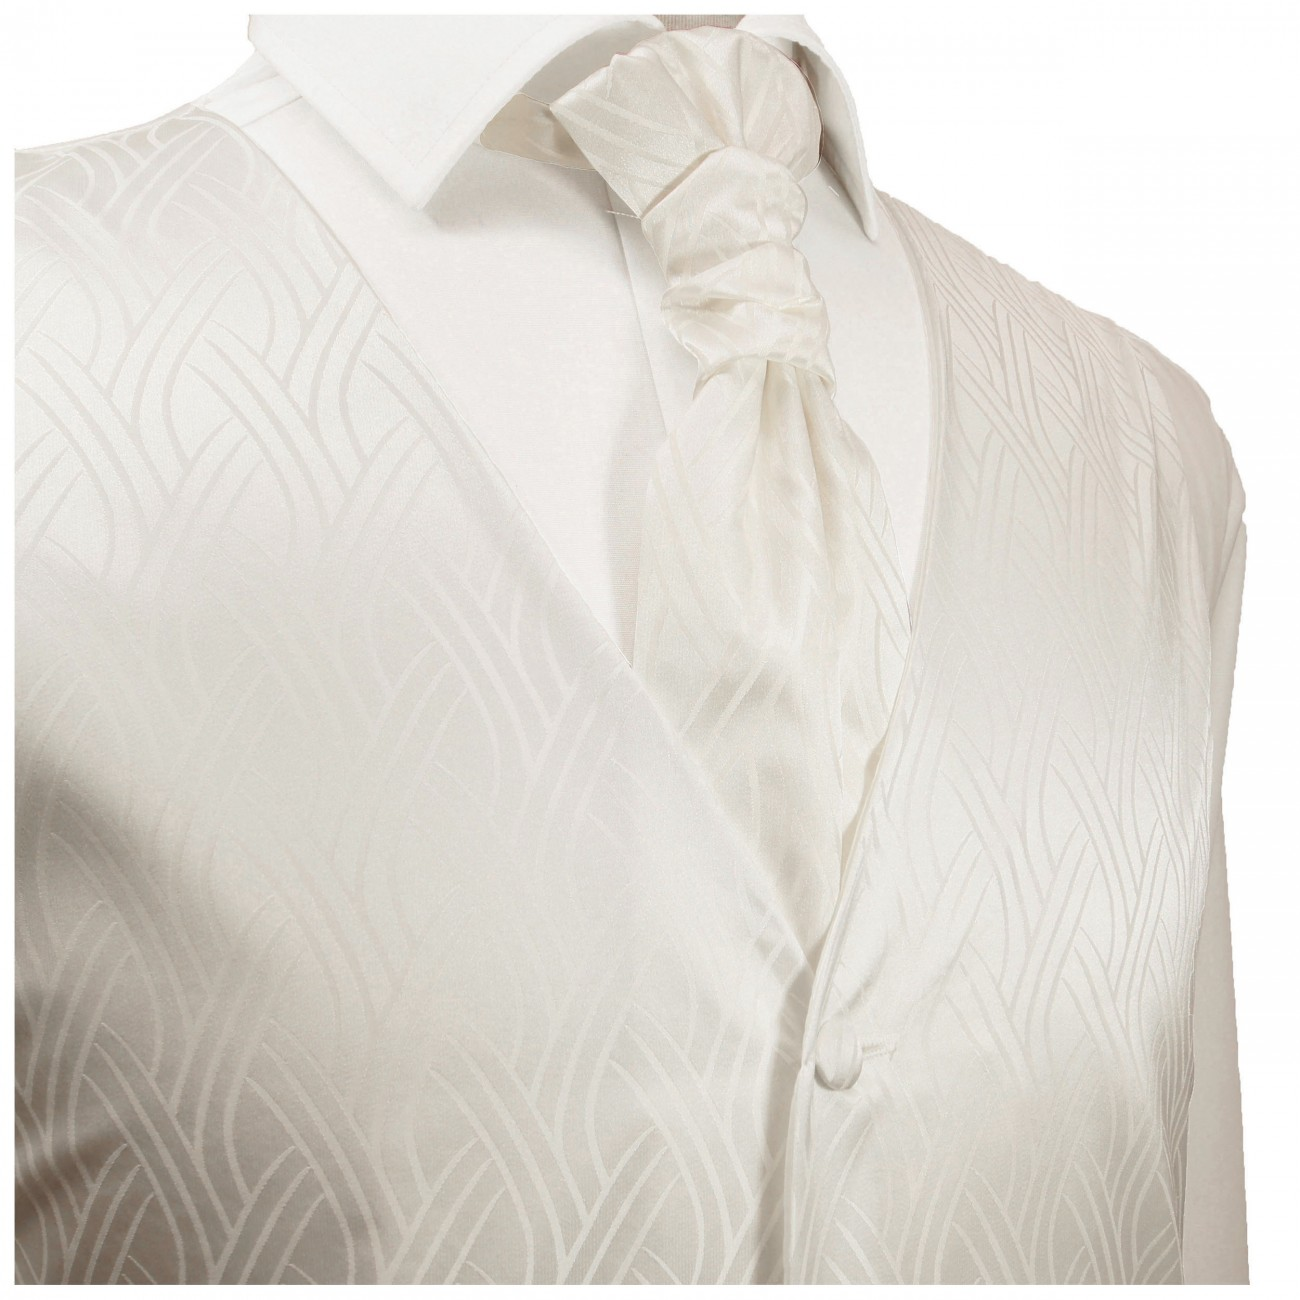 Ivory waistcoat striped for wedding with necktie ascot tie pocket square and cufflinks v25